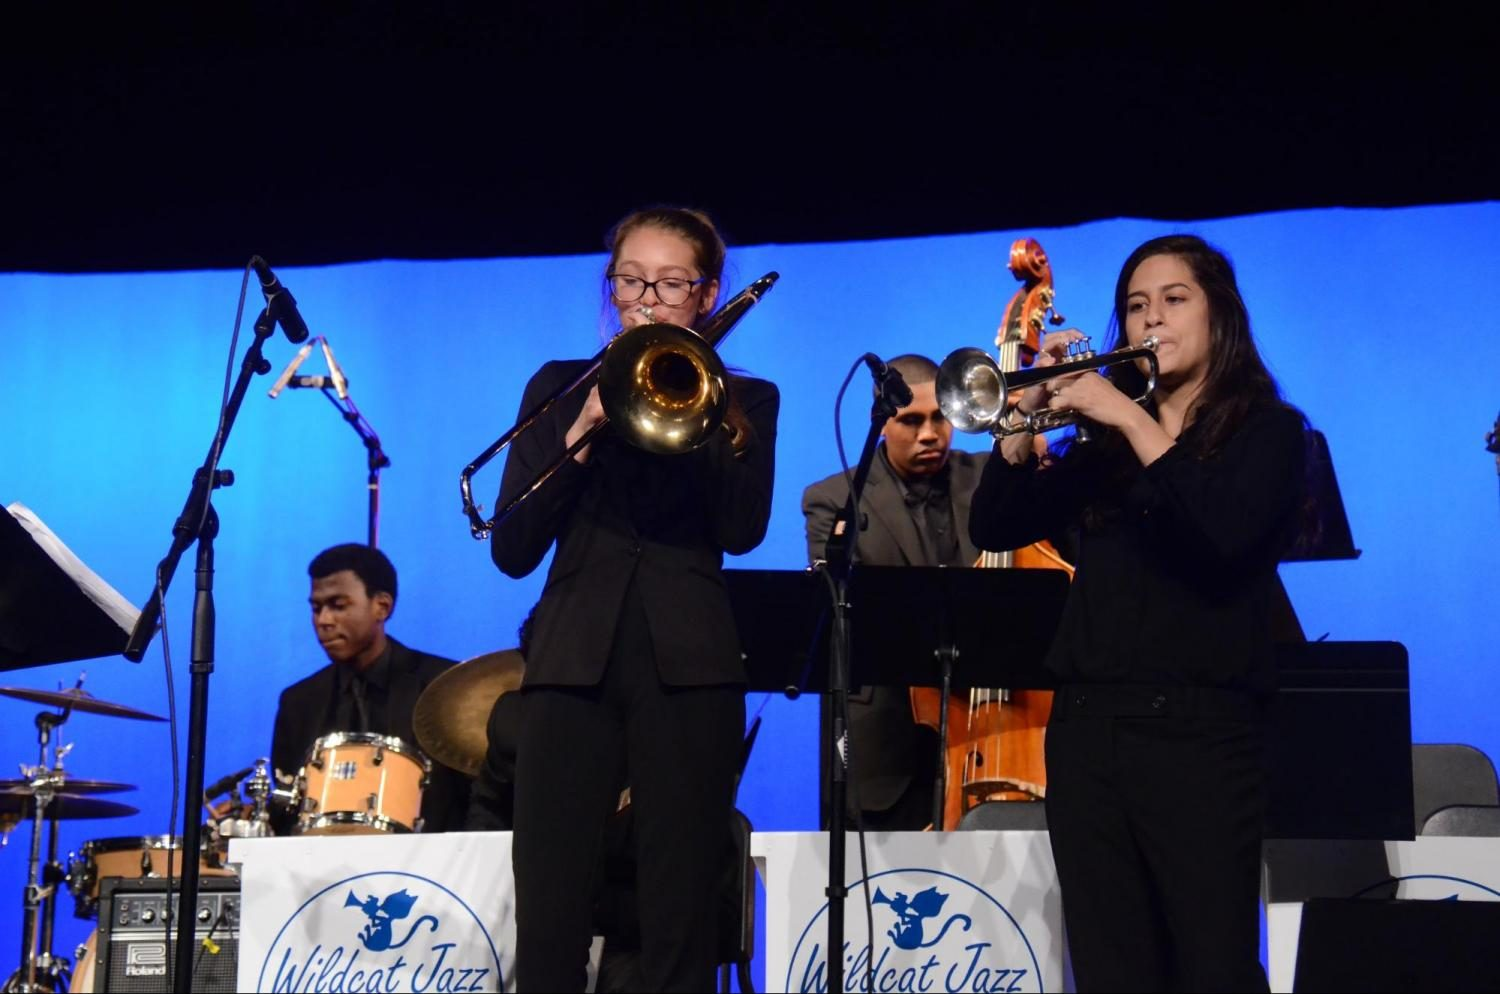 """The West Ranch Lab Band performed songs including """"Billie's Bounce,"""" """"Crazy Rhythm,"""" and """"Cantaloupe Island"""" with Logan White on trumpet, Mackenzie Voll on Trombone, Pauline Vartany on Piano, Ben Hernandez on Guitar, Maxwell Johnson on Bass and Nick Hosch on drums."""